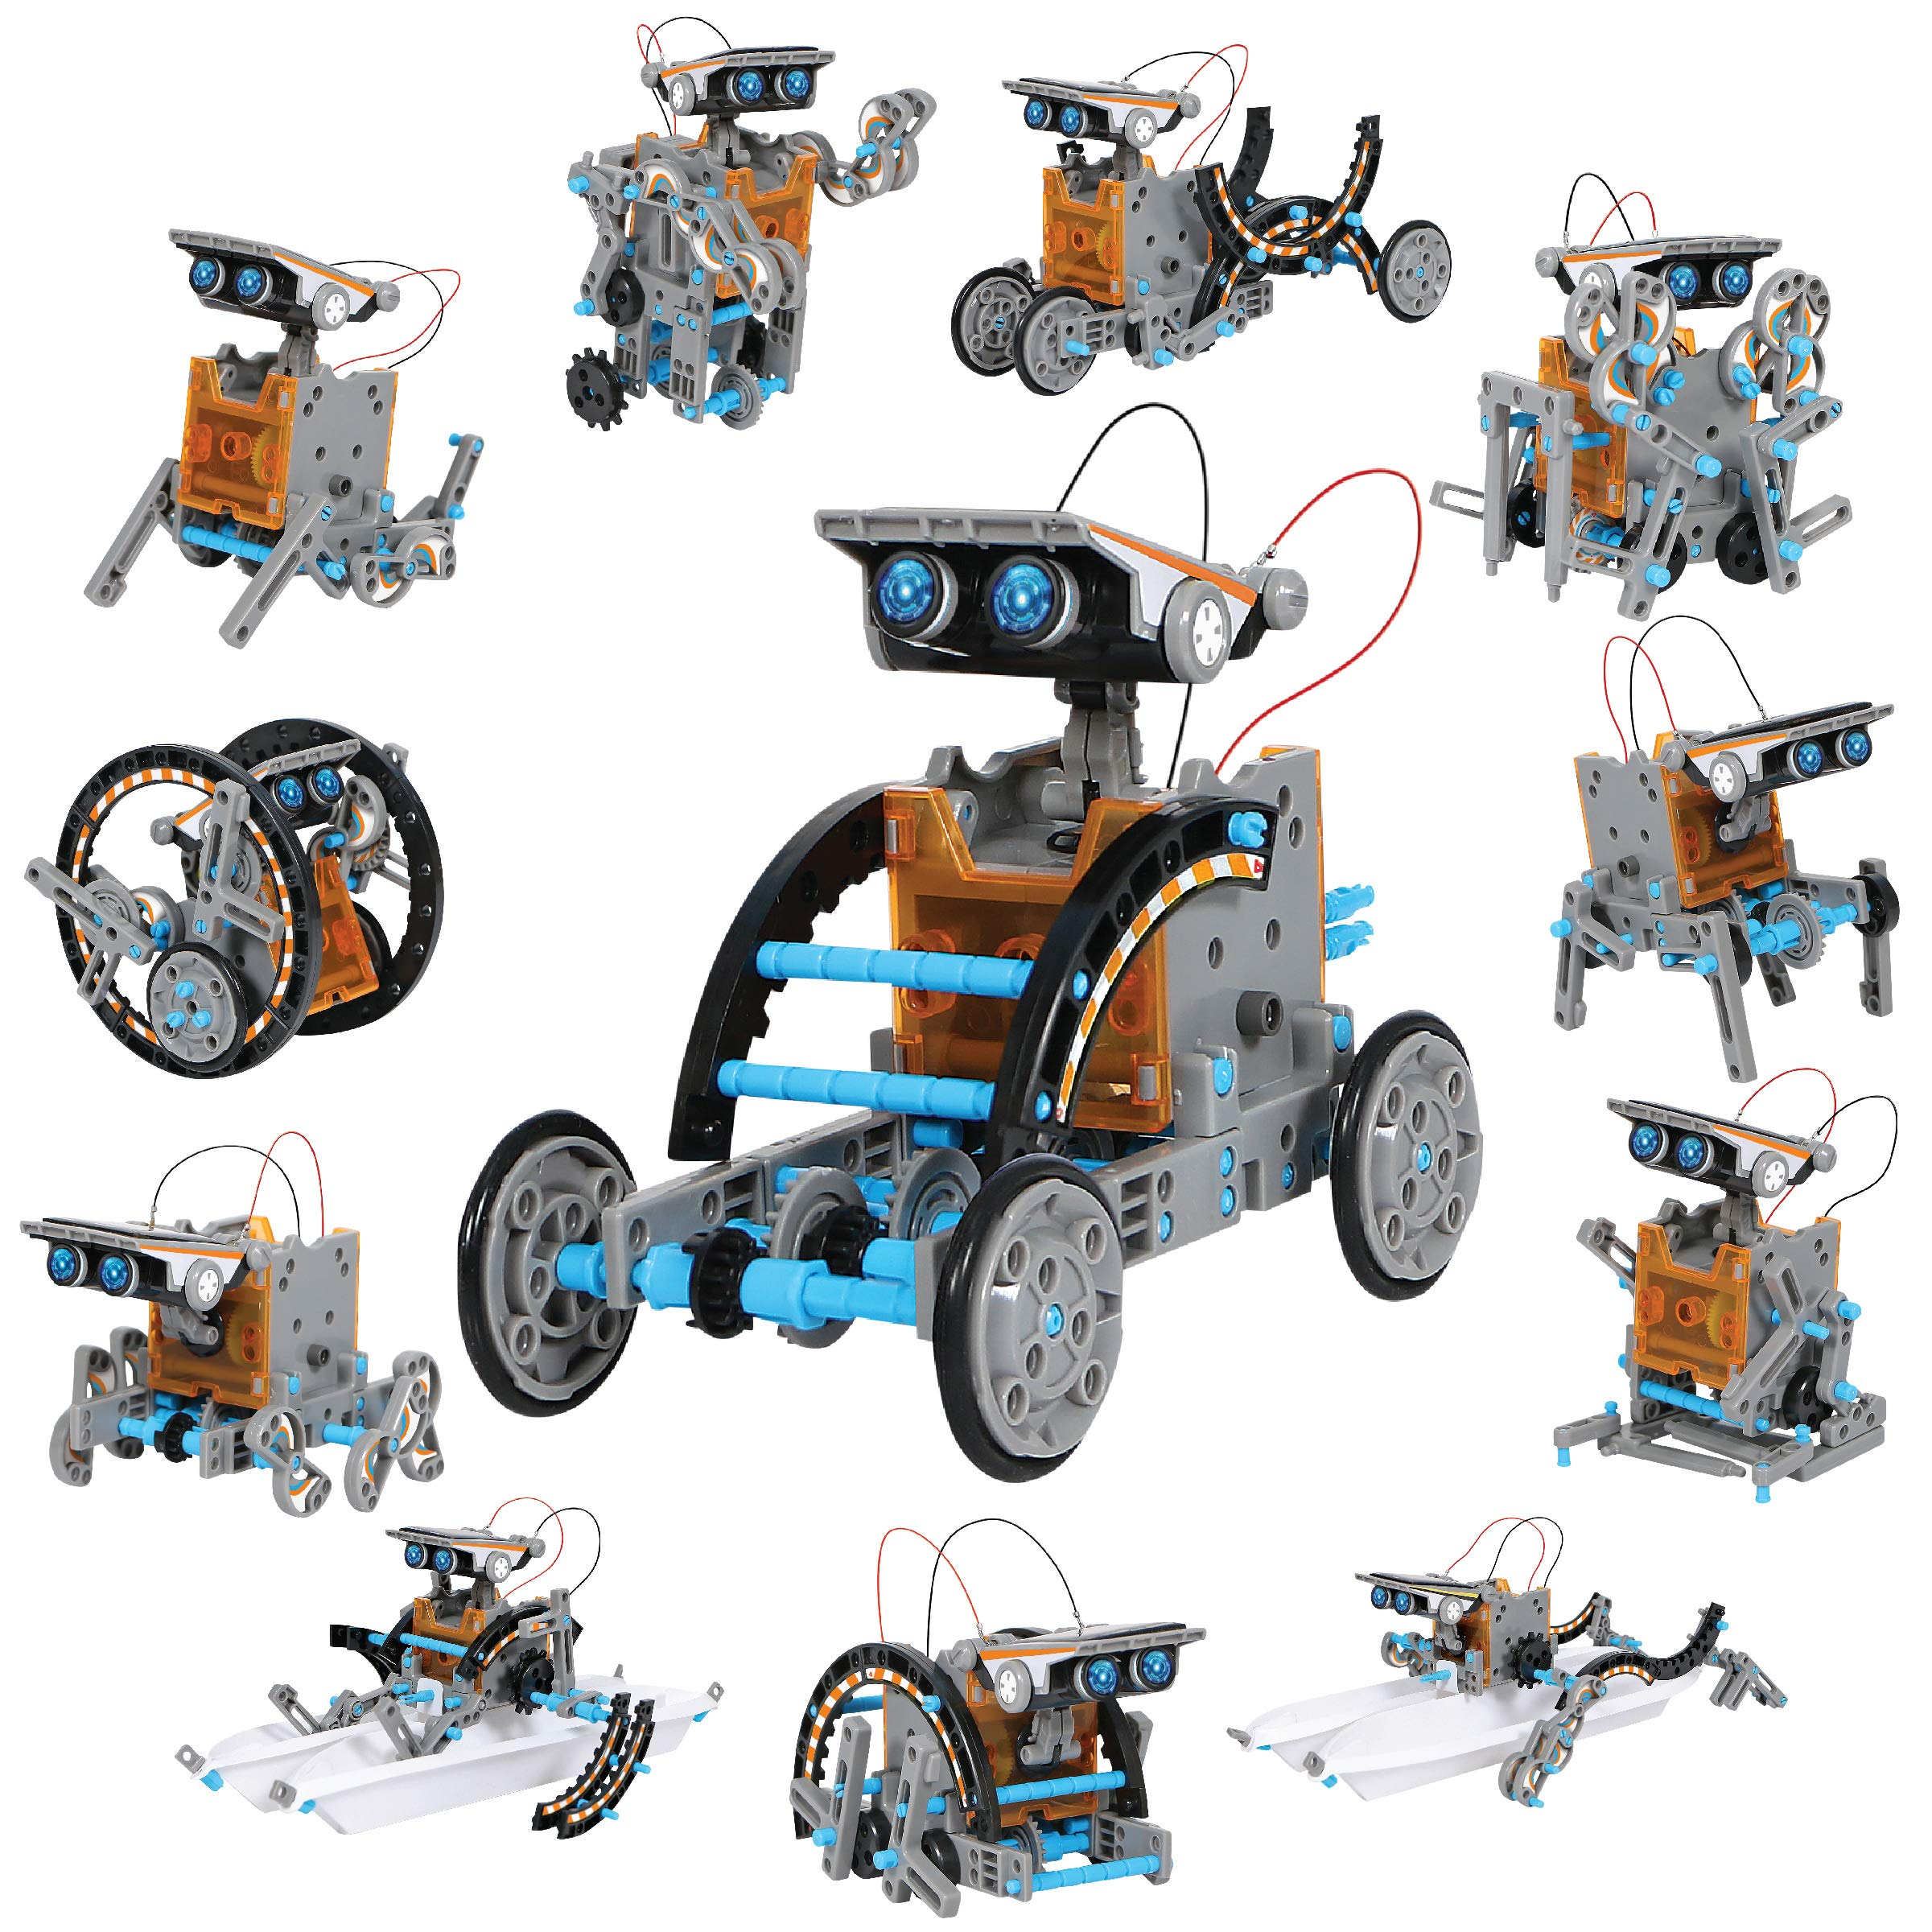 DISCOVERY KIDS Mindblown STEM 12-in-1 Solar Robot Creation 190-Piece Kit with Working Solar Powered Motorized Engine and Gears, Construction Engineering Set by Discovery Kids (Image #1)